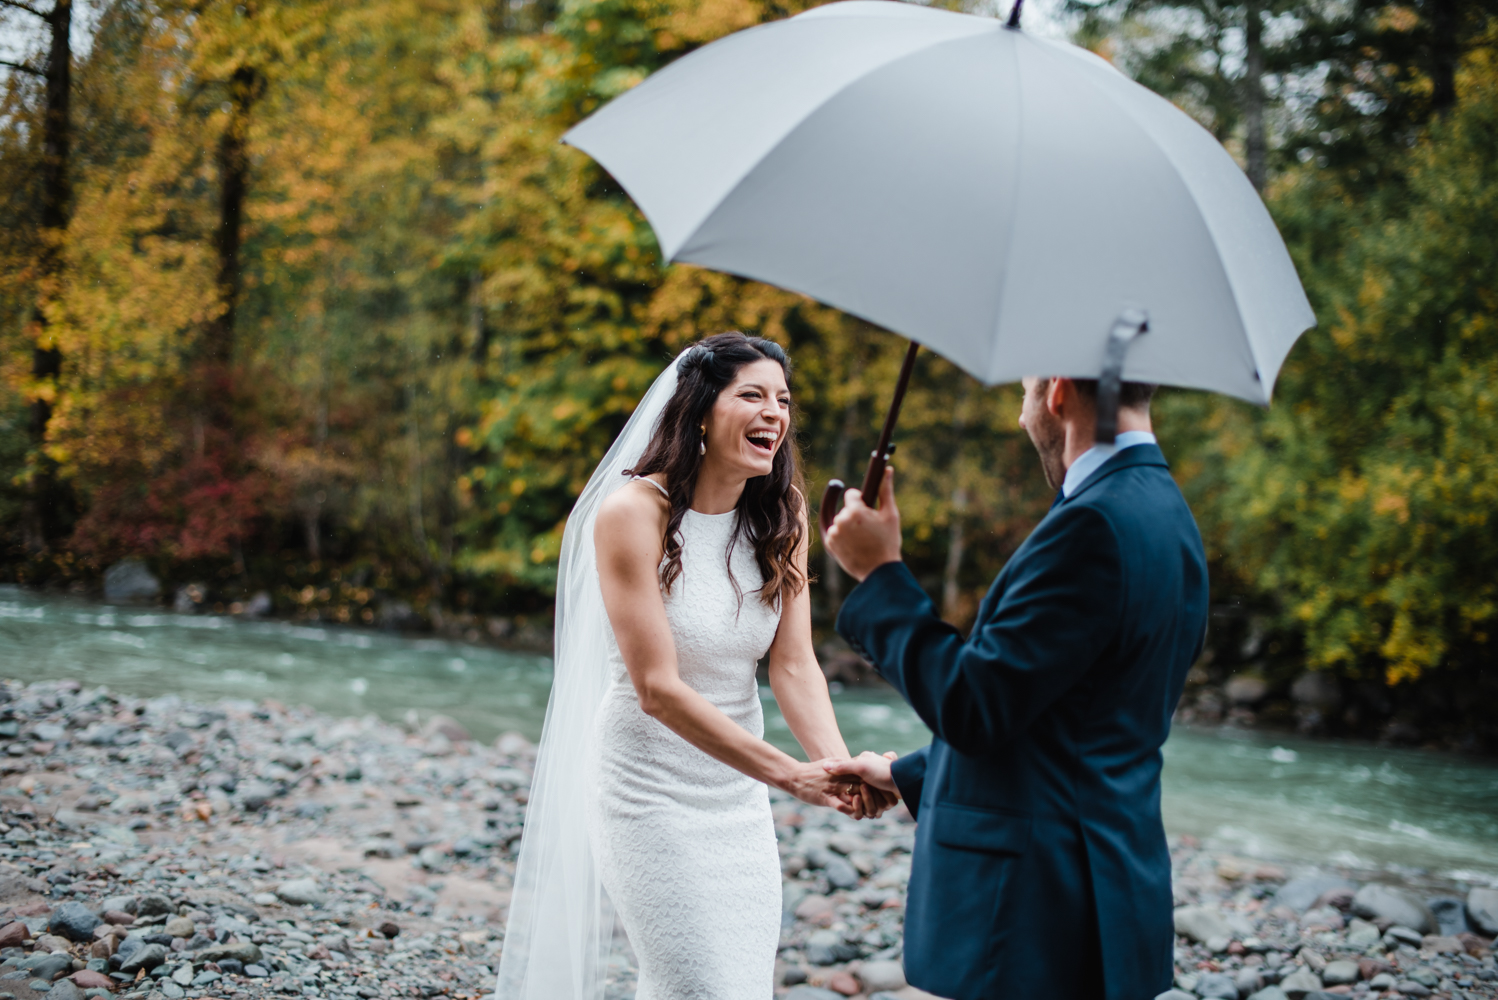 Squamish Wedding Photographer23.jpg